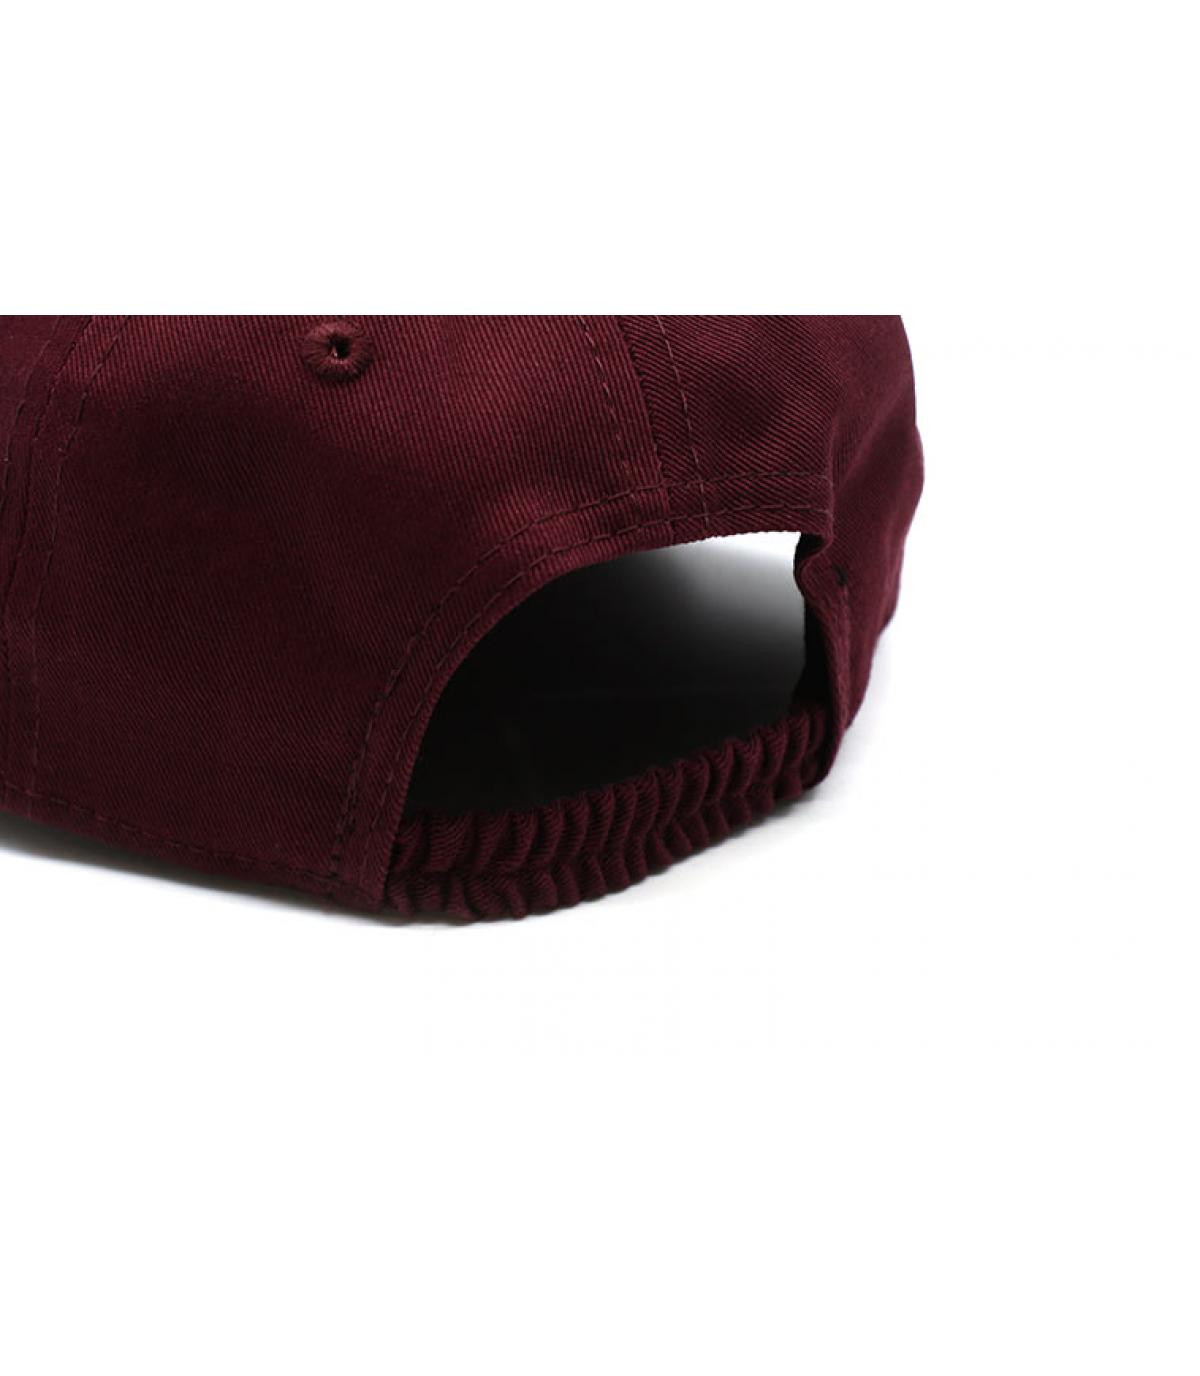 Details Baby League Ess NY 9Forty maroon - afbeeling 5